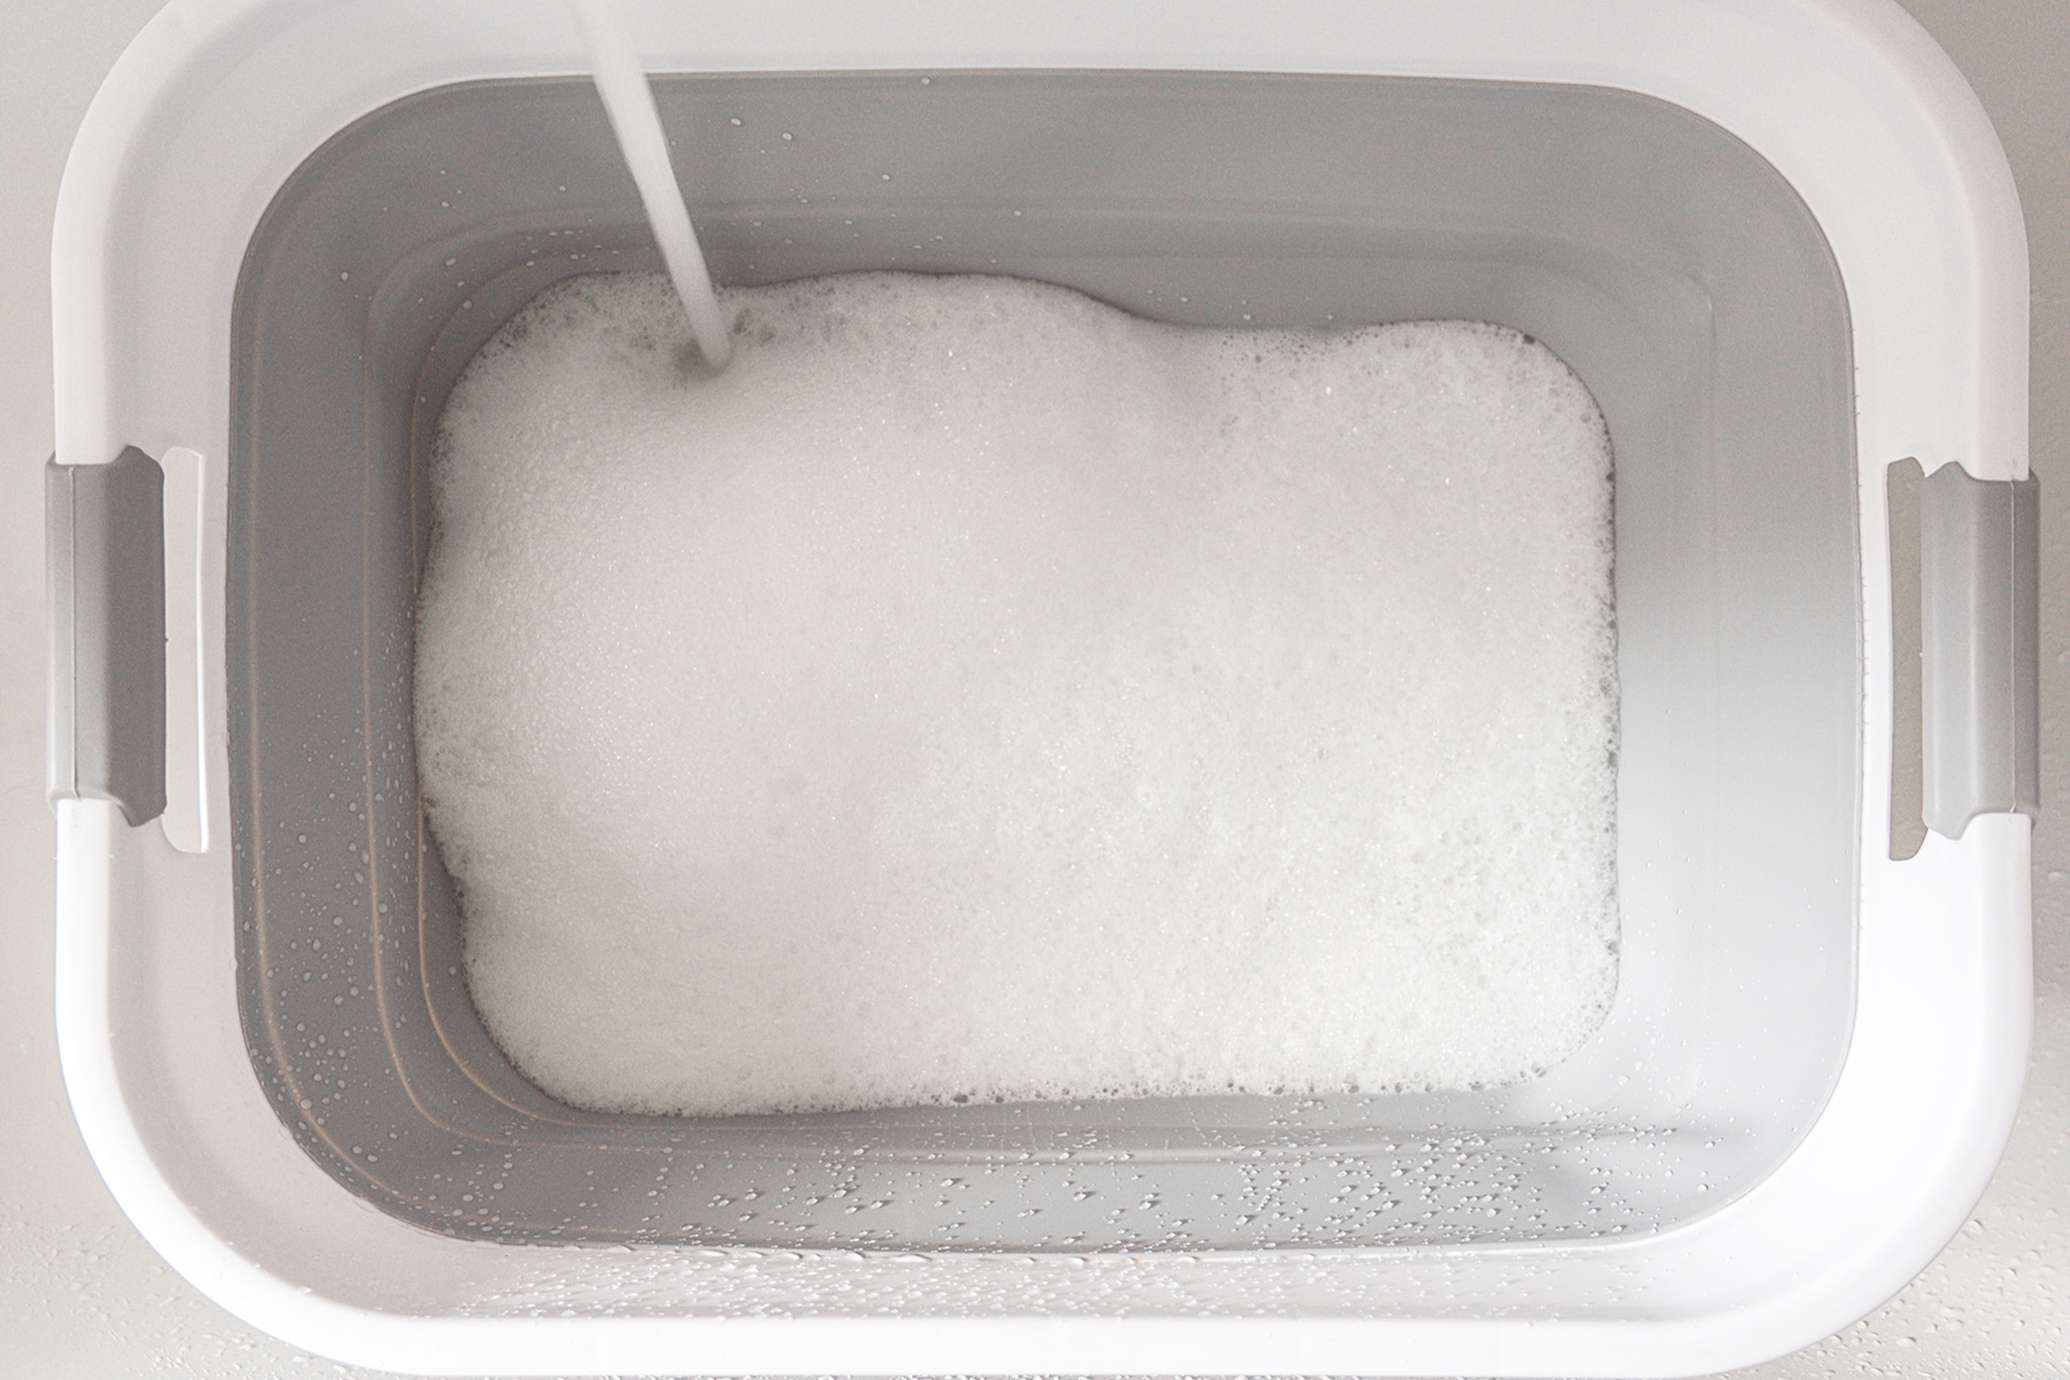 White plastic bin filled with water and high-efficiency gentle detergent